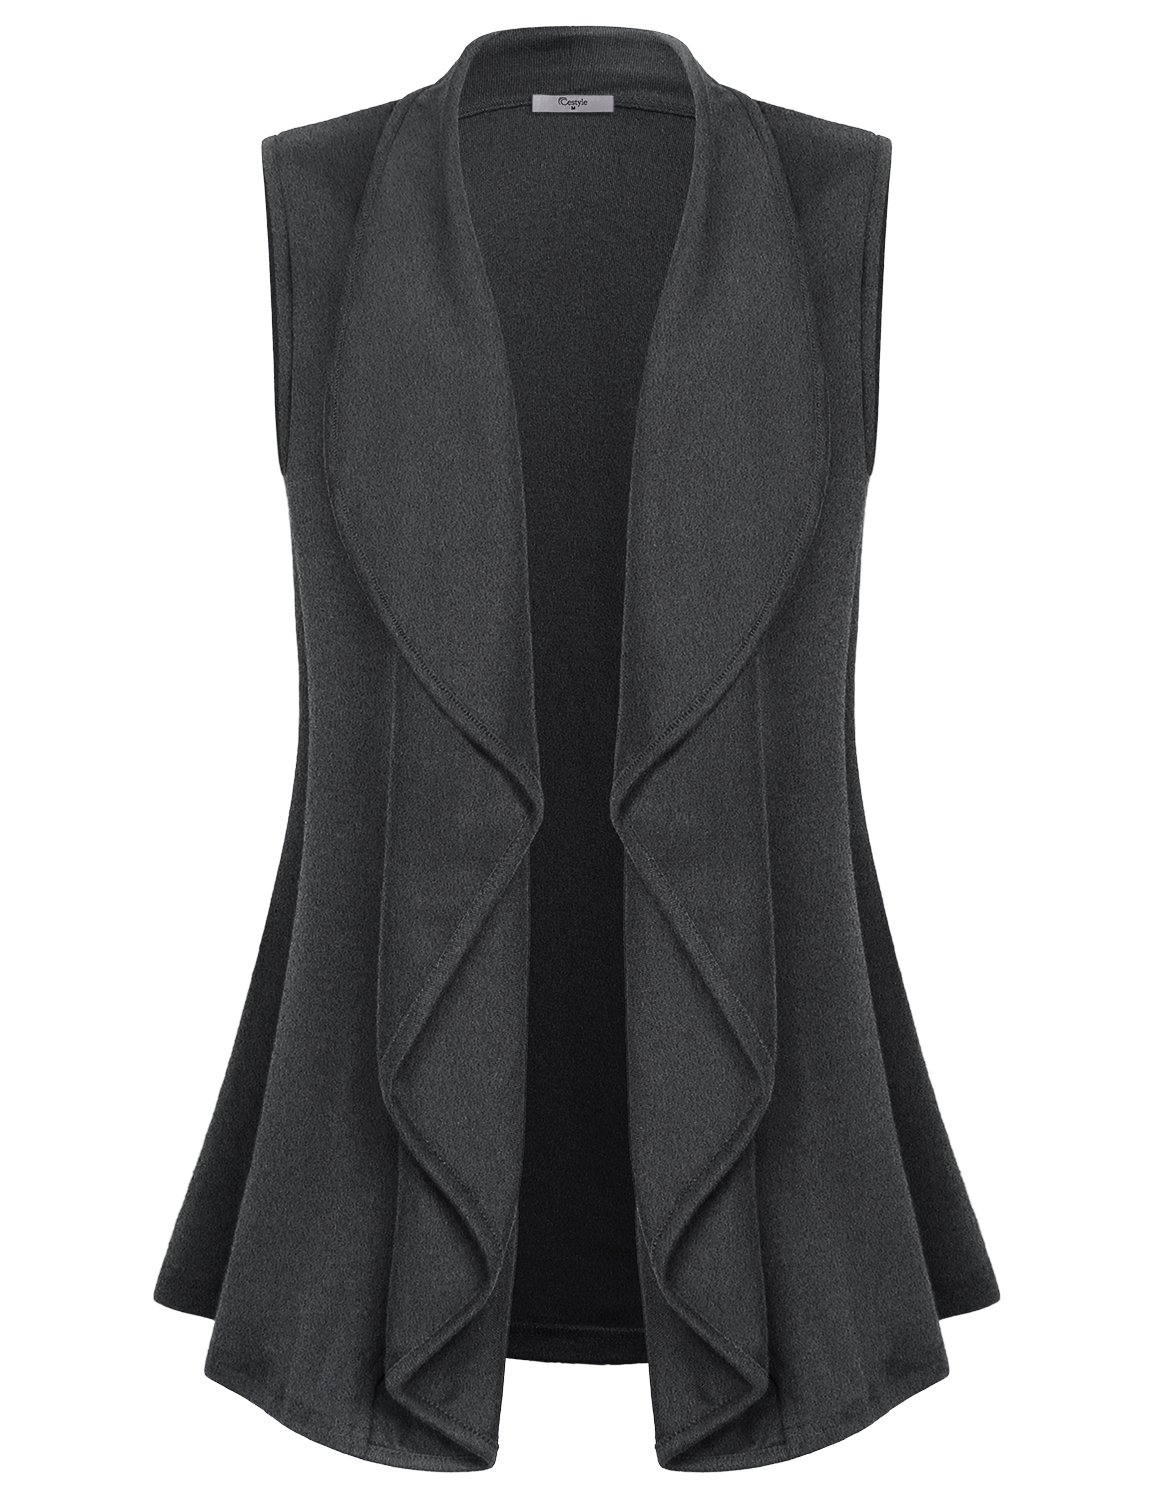 Cestyle Summer Vest for Women, Female Elegant Shawl Collar Hi Low Slimming Sleeveless Cardigans Girls Comfy Soft Office Wear with Stretchy Charcoal XX-Large